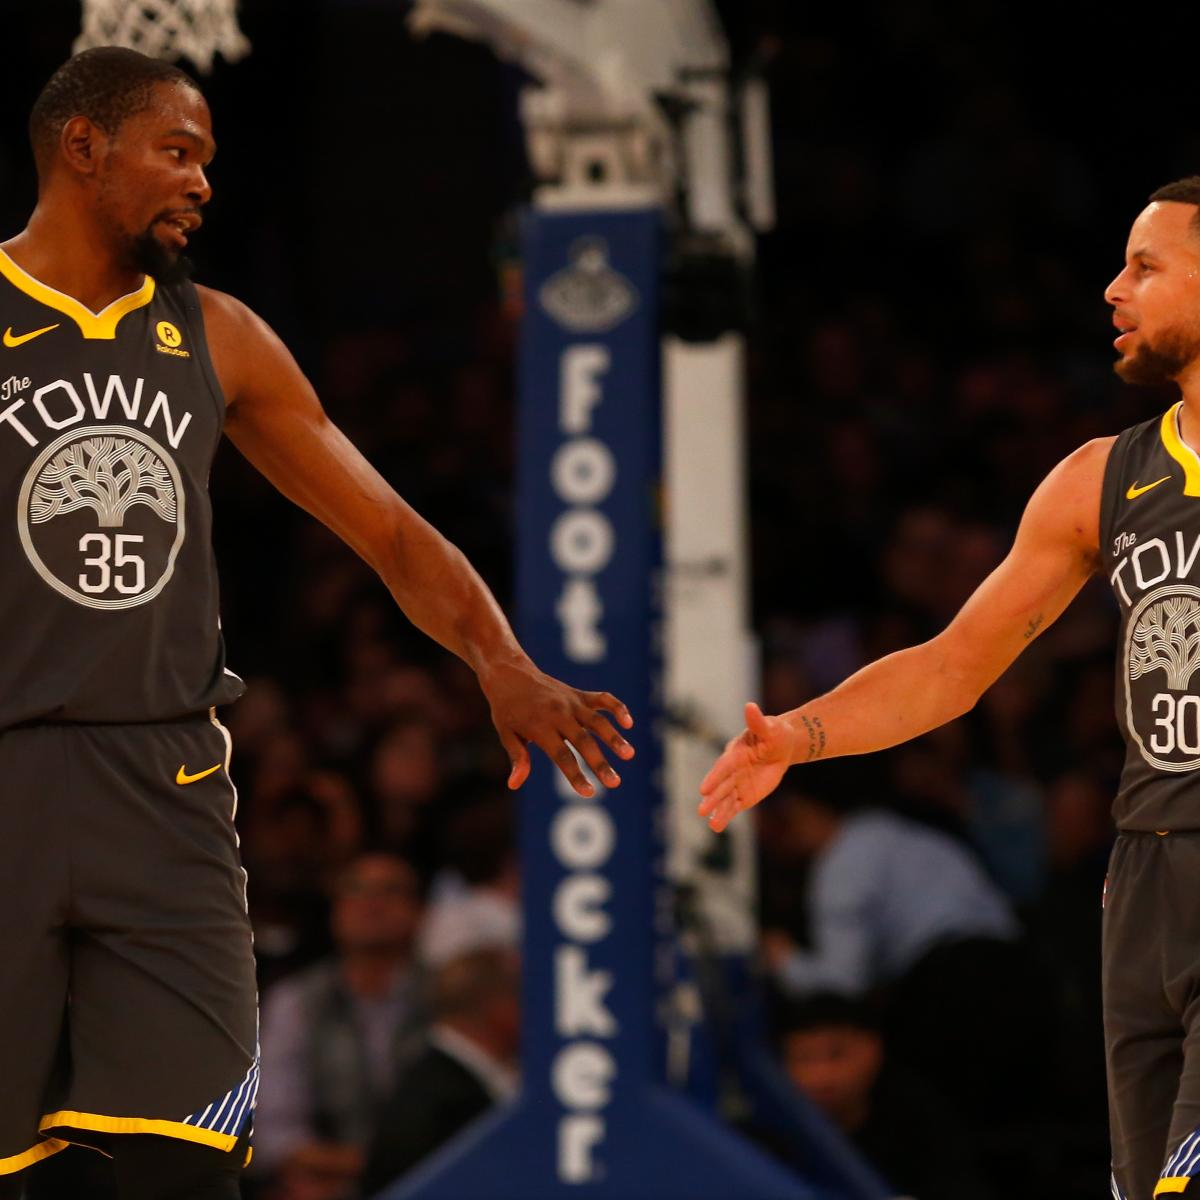 Warriors Come Out To Play Bleacher Report: Warriors GM Gives Injury Updates On Stephen Curry, Kevin